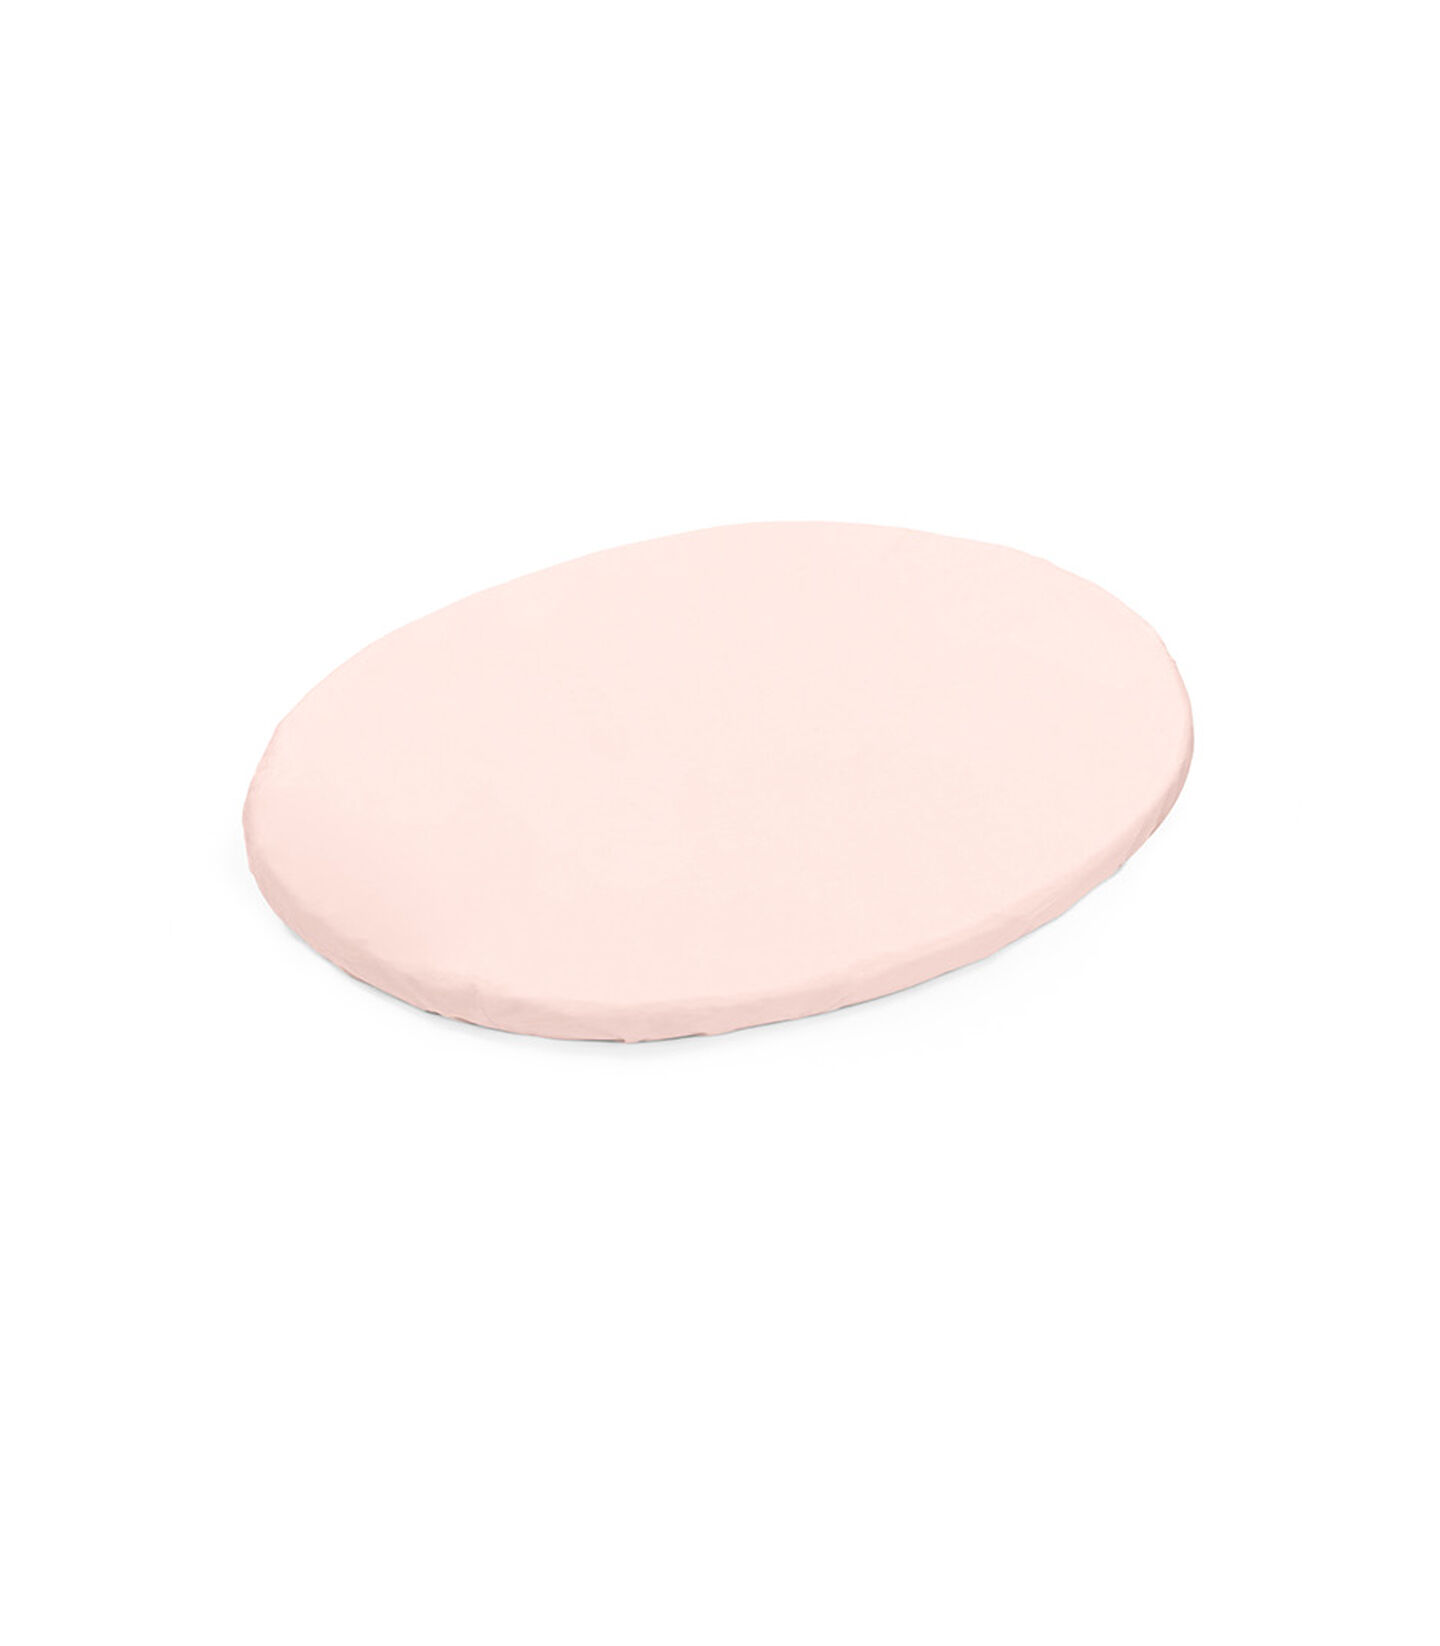 Stokke® Sleepi™ Mini Fitted Sheet Peachy Pink, Peachy Pink, mainview view 1